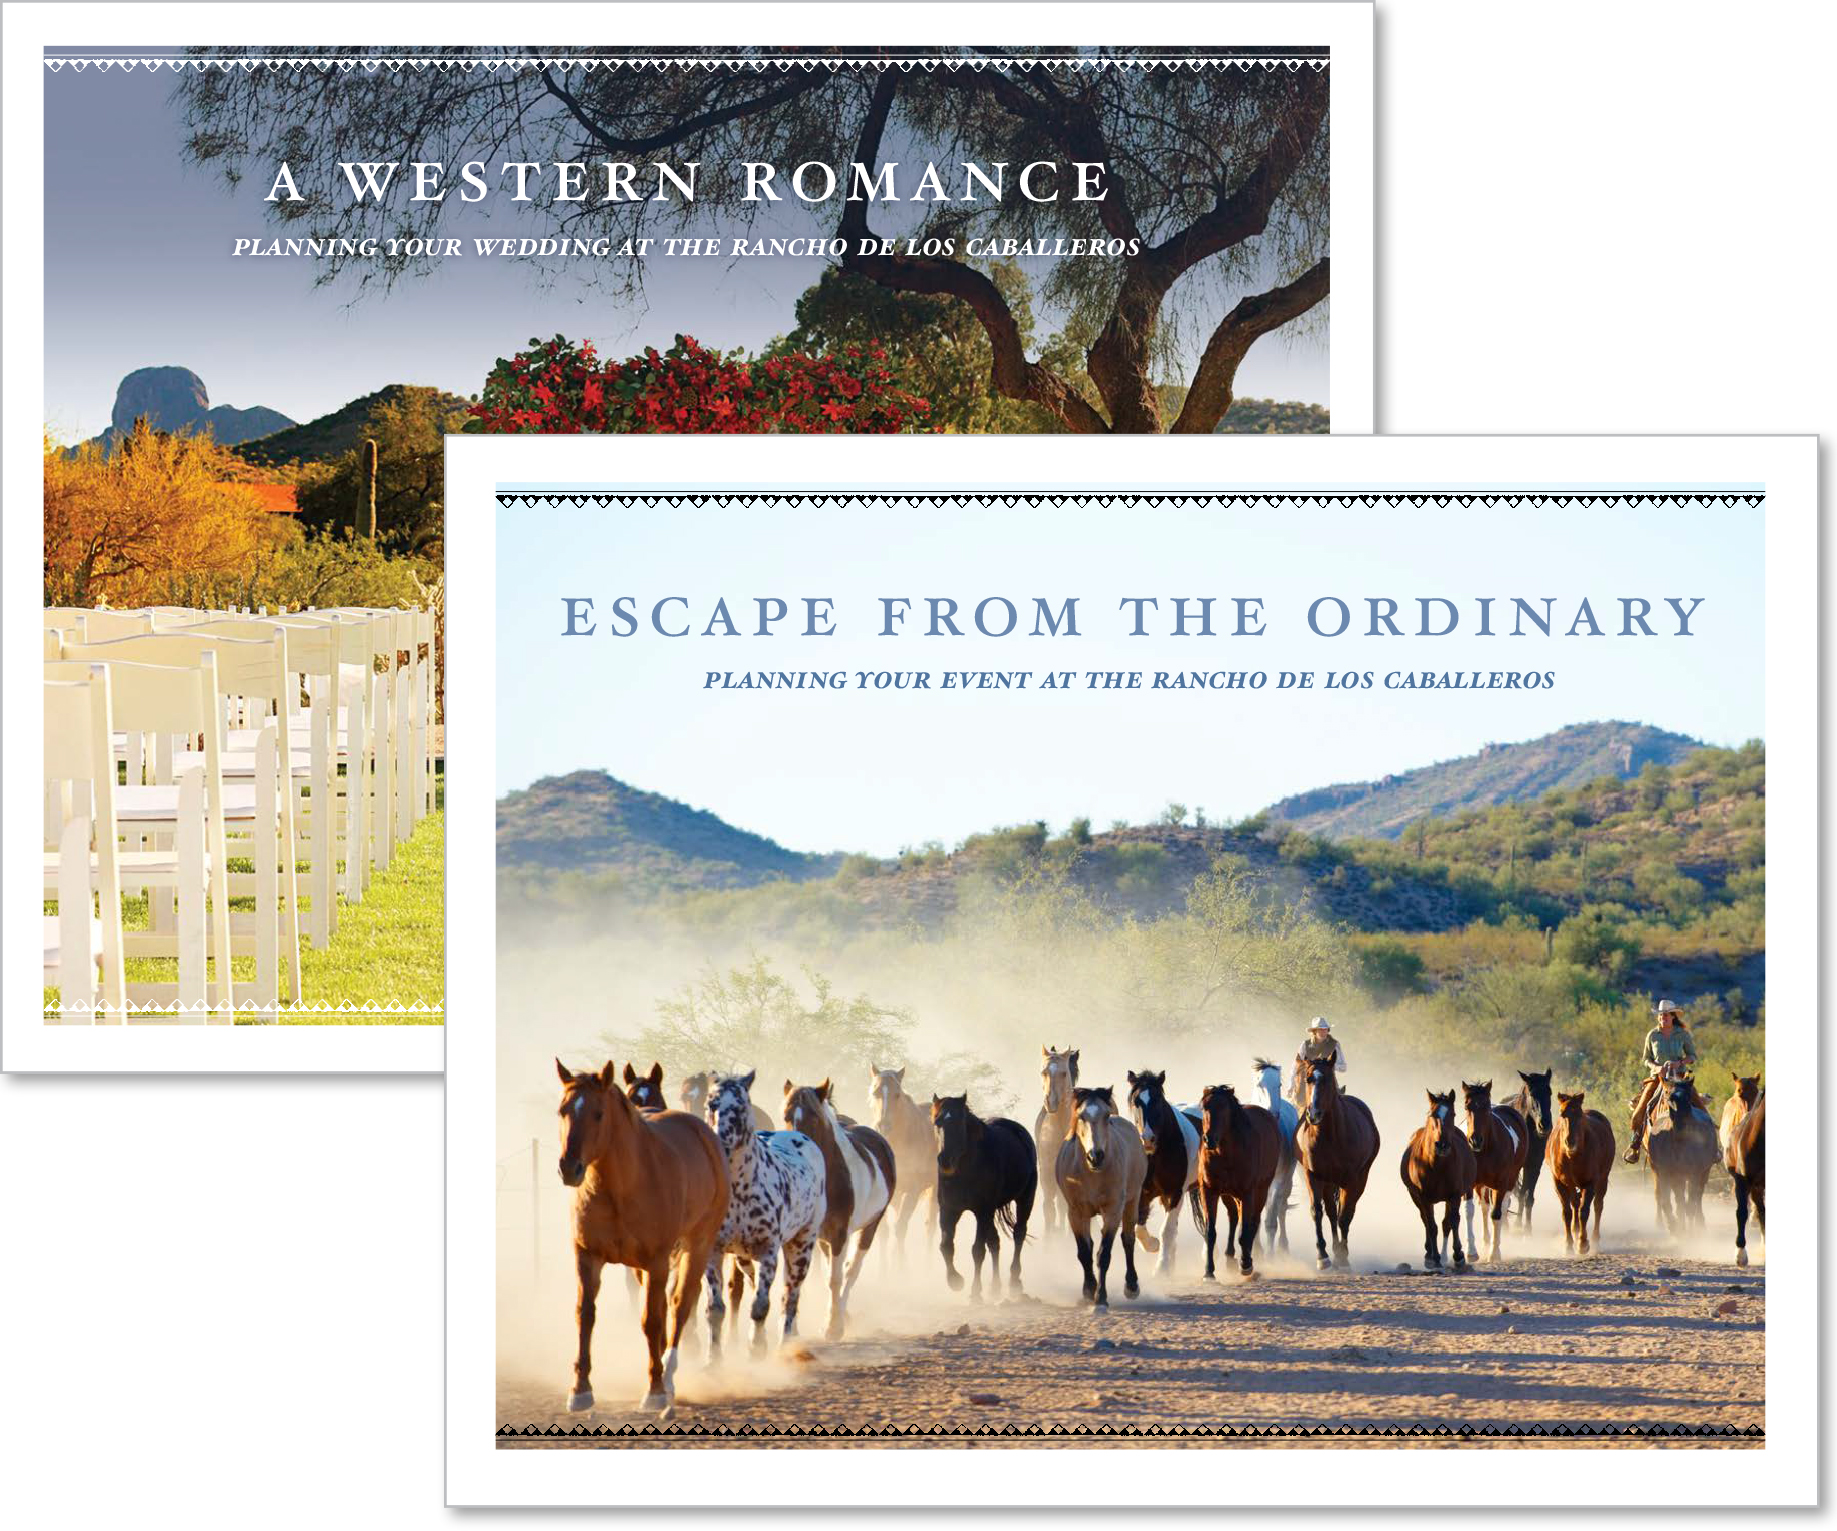 Event pLANNERS: A WESTERN RESORT RAISES THE BAR -